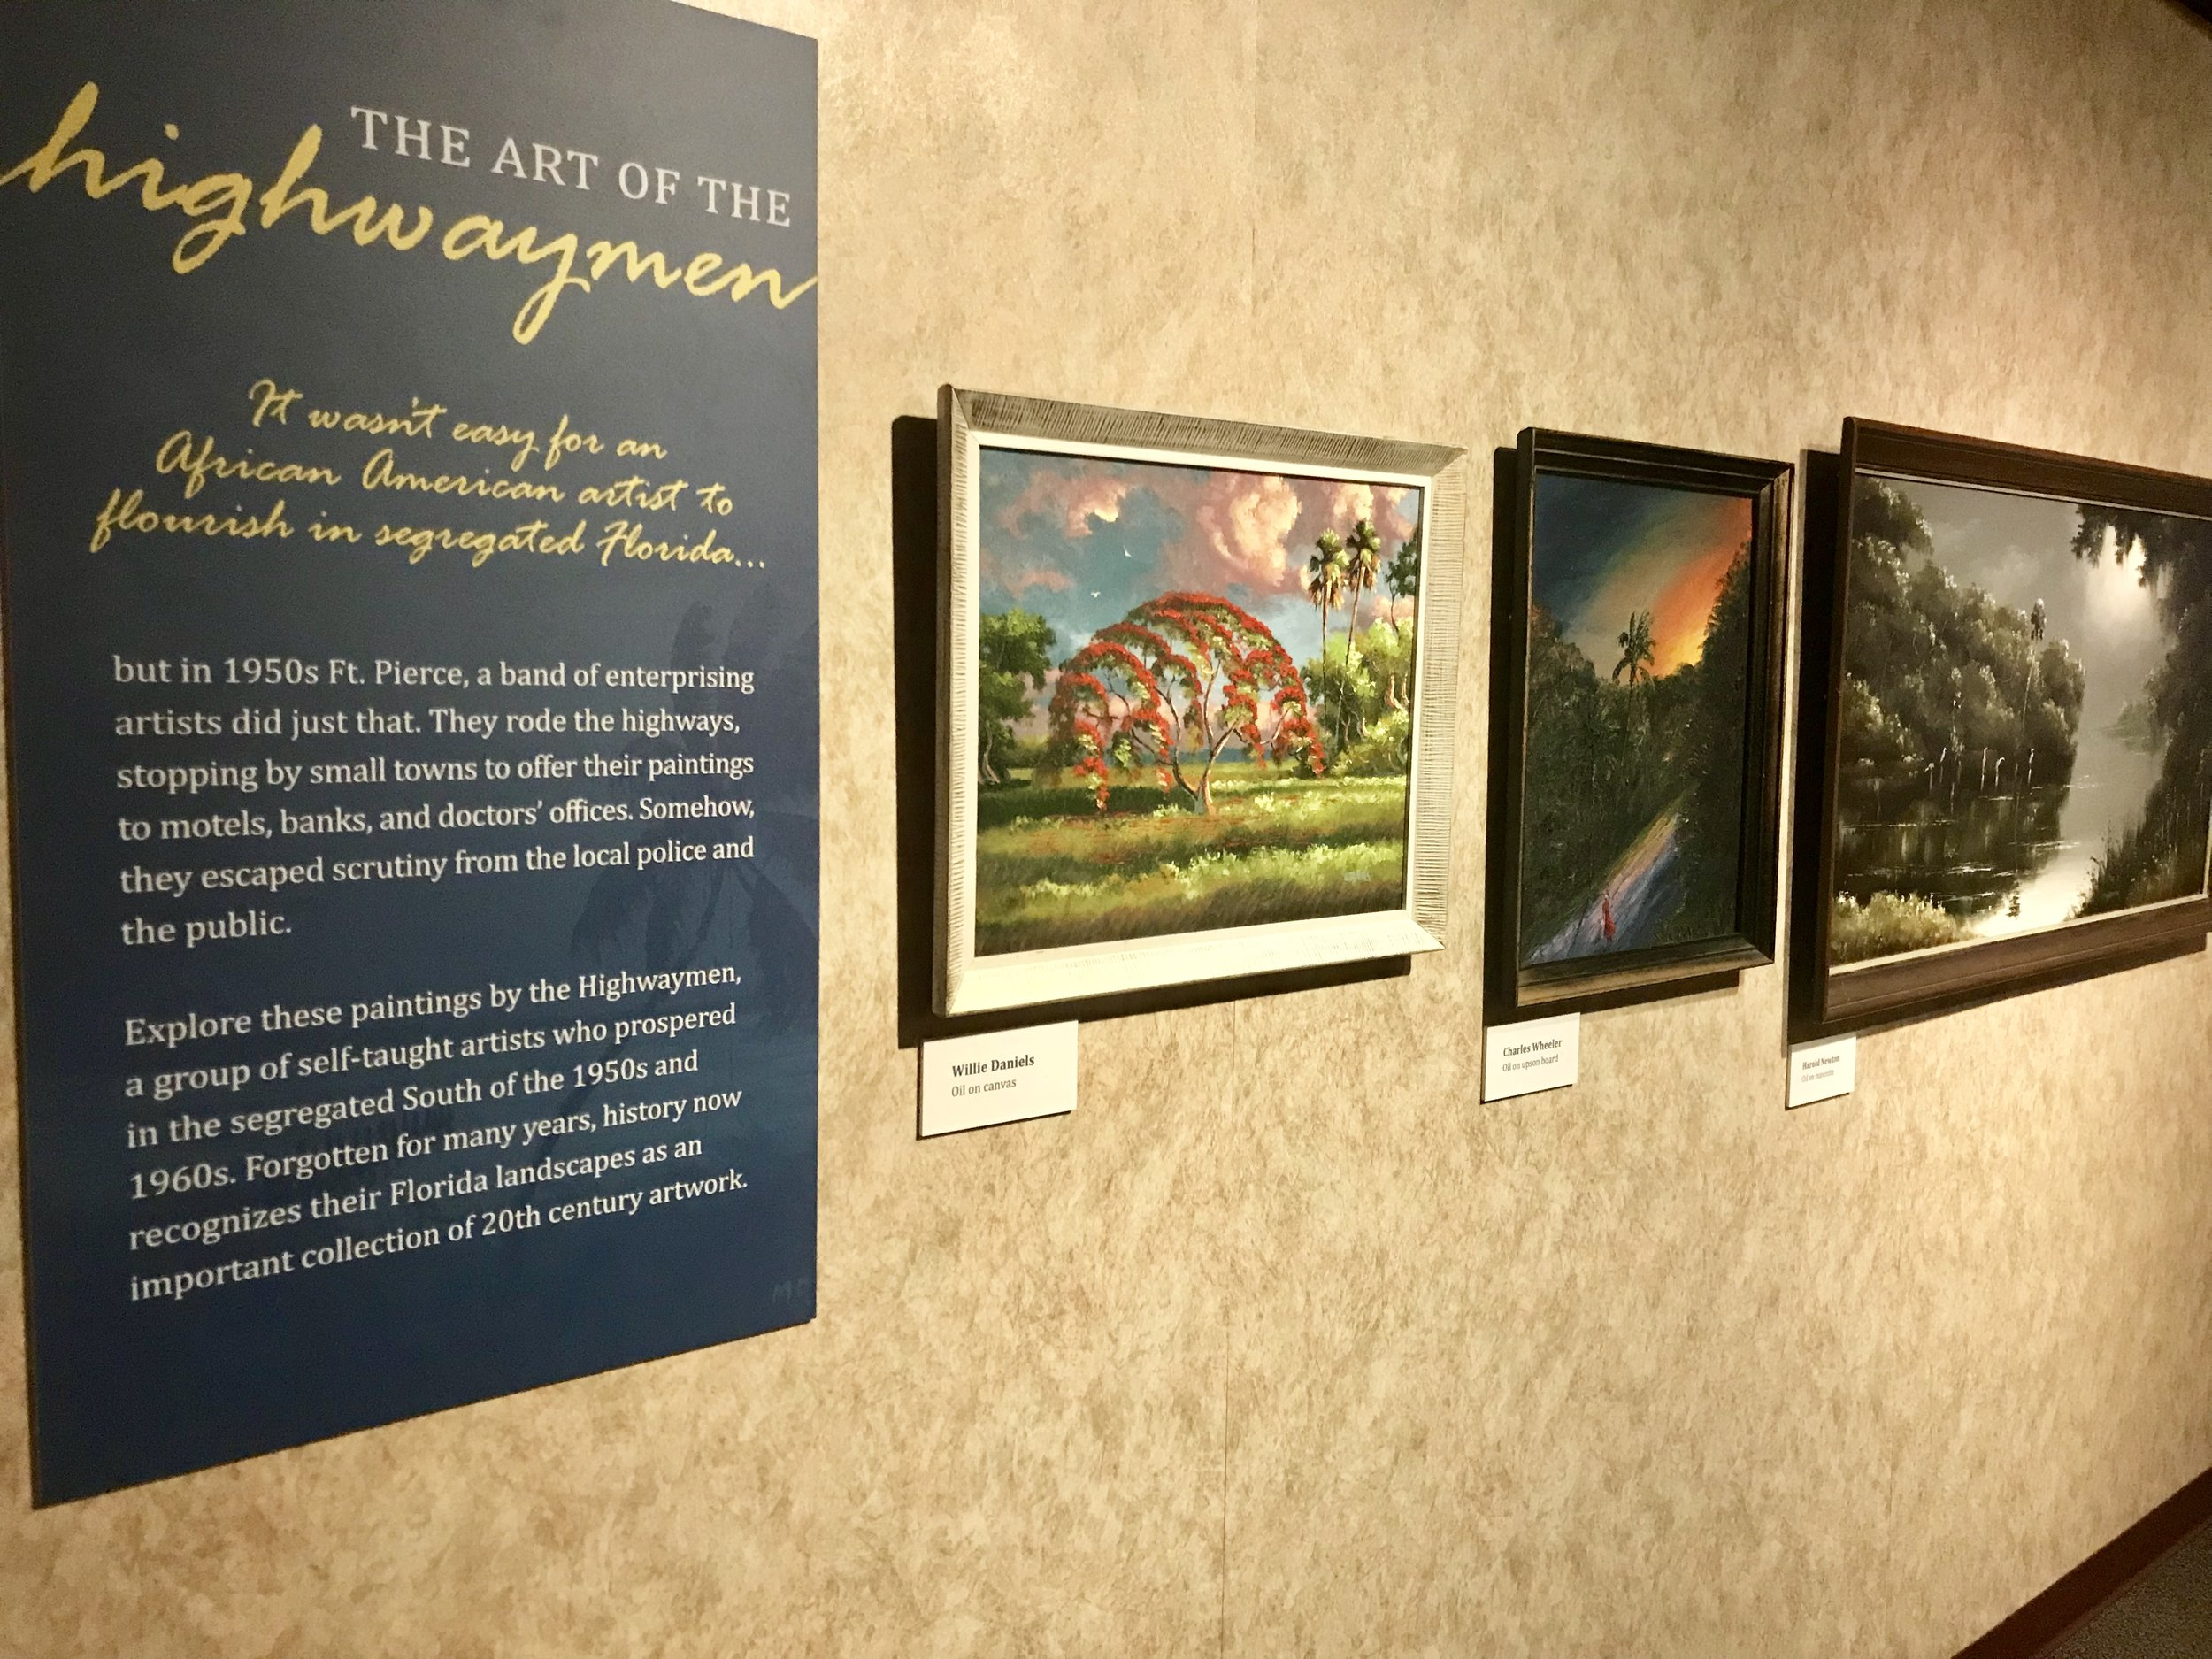 The second floor has a few Highwaymen paintings, as well as a wall of replicas by children.